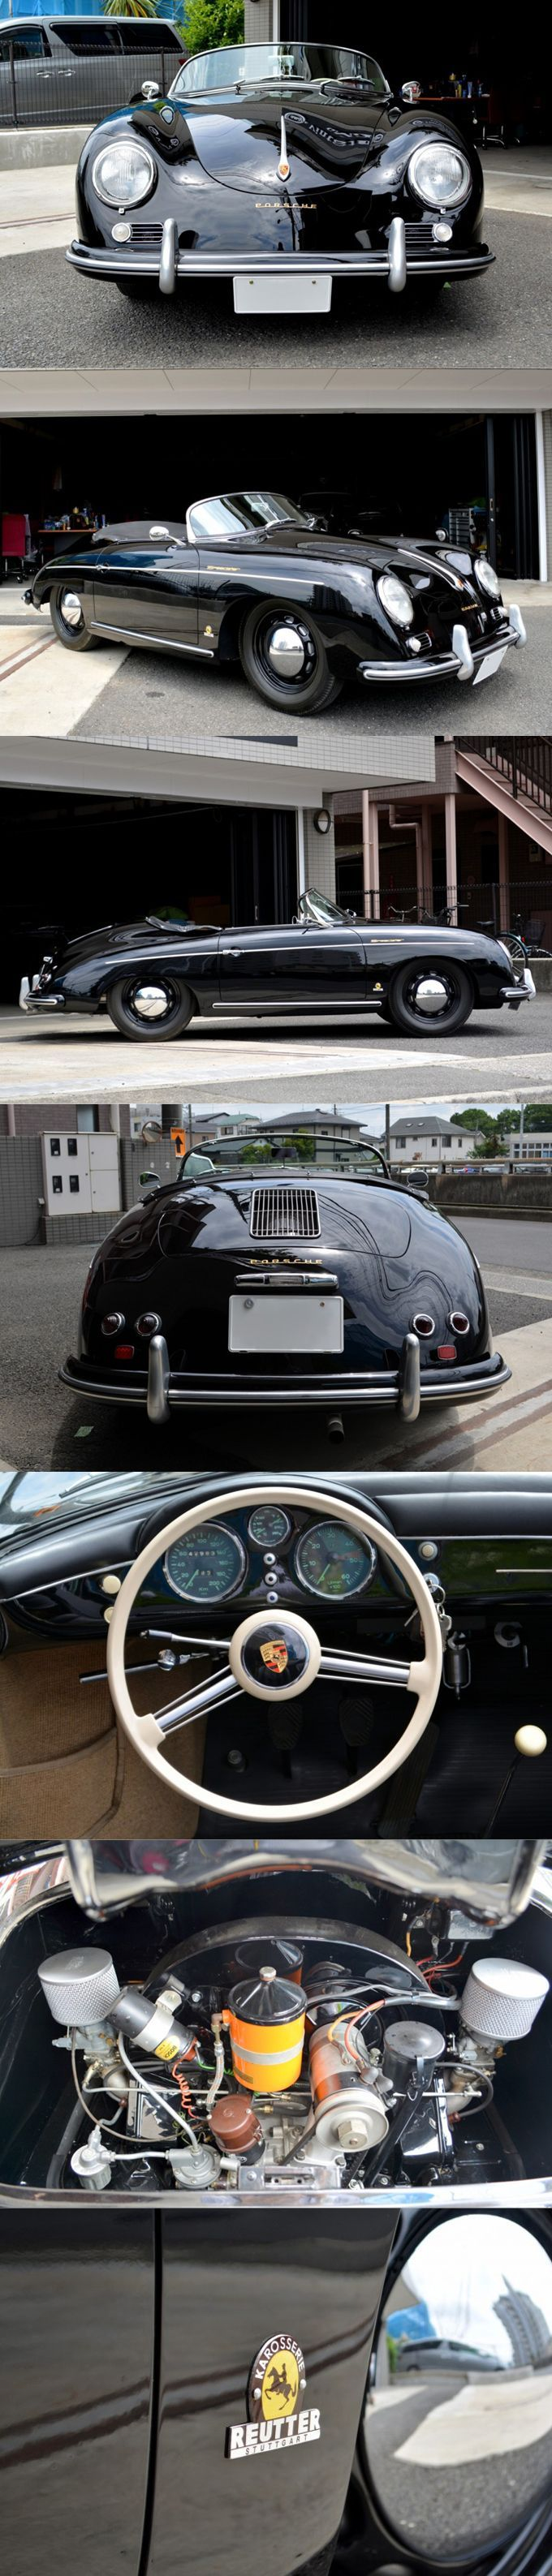 1955 #Porsche 356 Speedster Reutter / pre A / 43.000km / vintage-#car.net / Japan / #black / 17-263